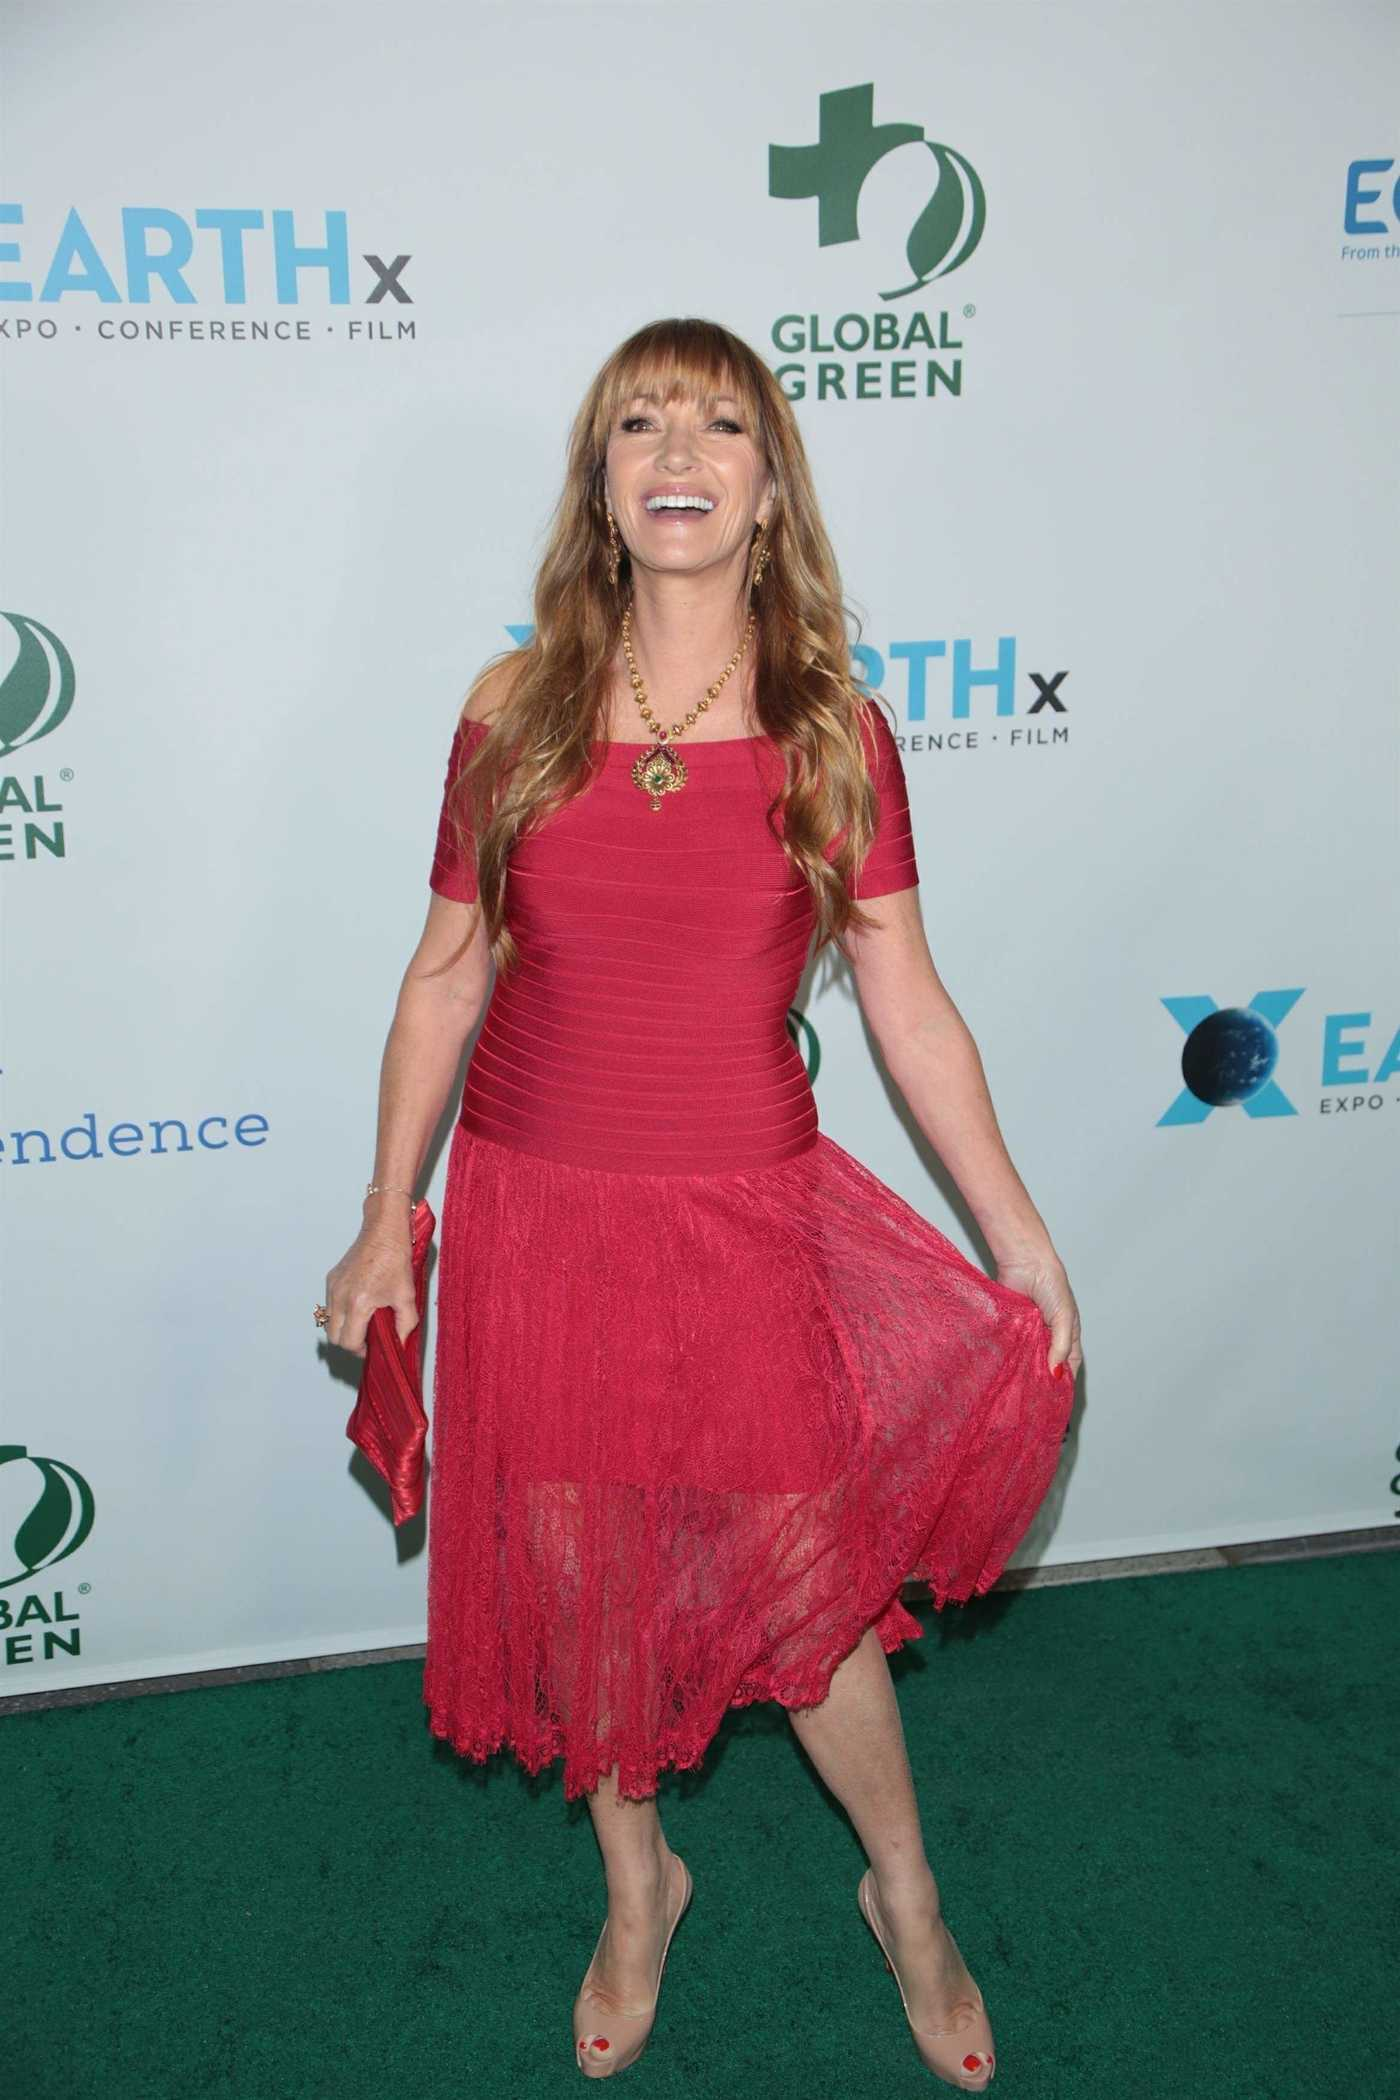 Jane Seymour at the 15th Annual Global Green Pre-Oscar Gala in Los Angeles 02/28/2018